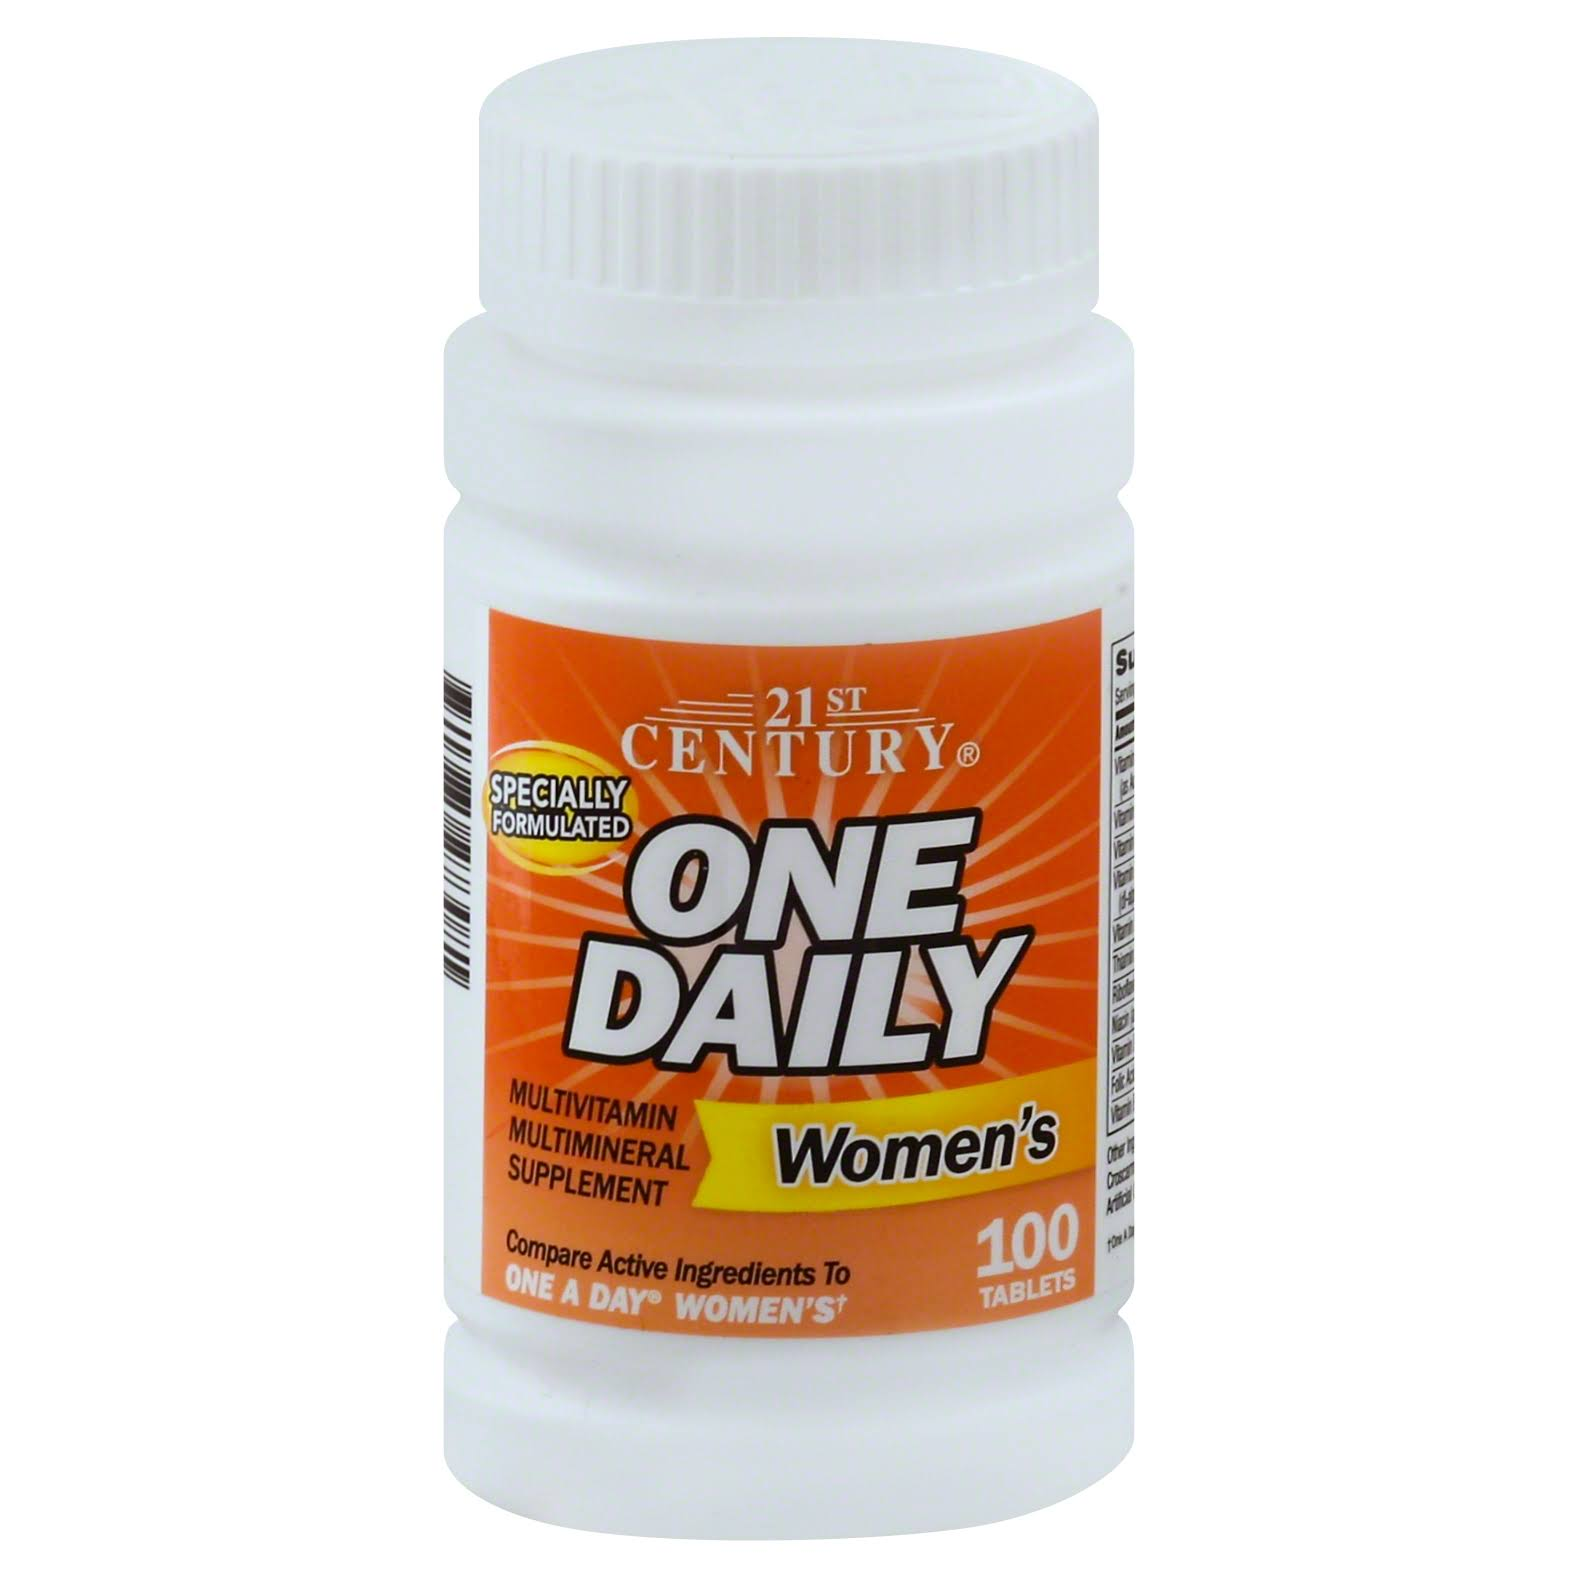 21st Century One Daily Women's Tablets - 100ct